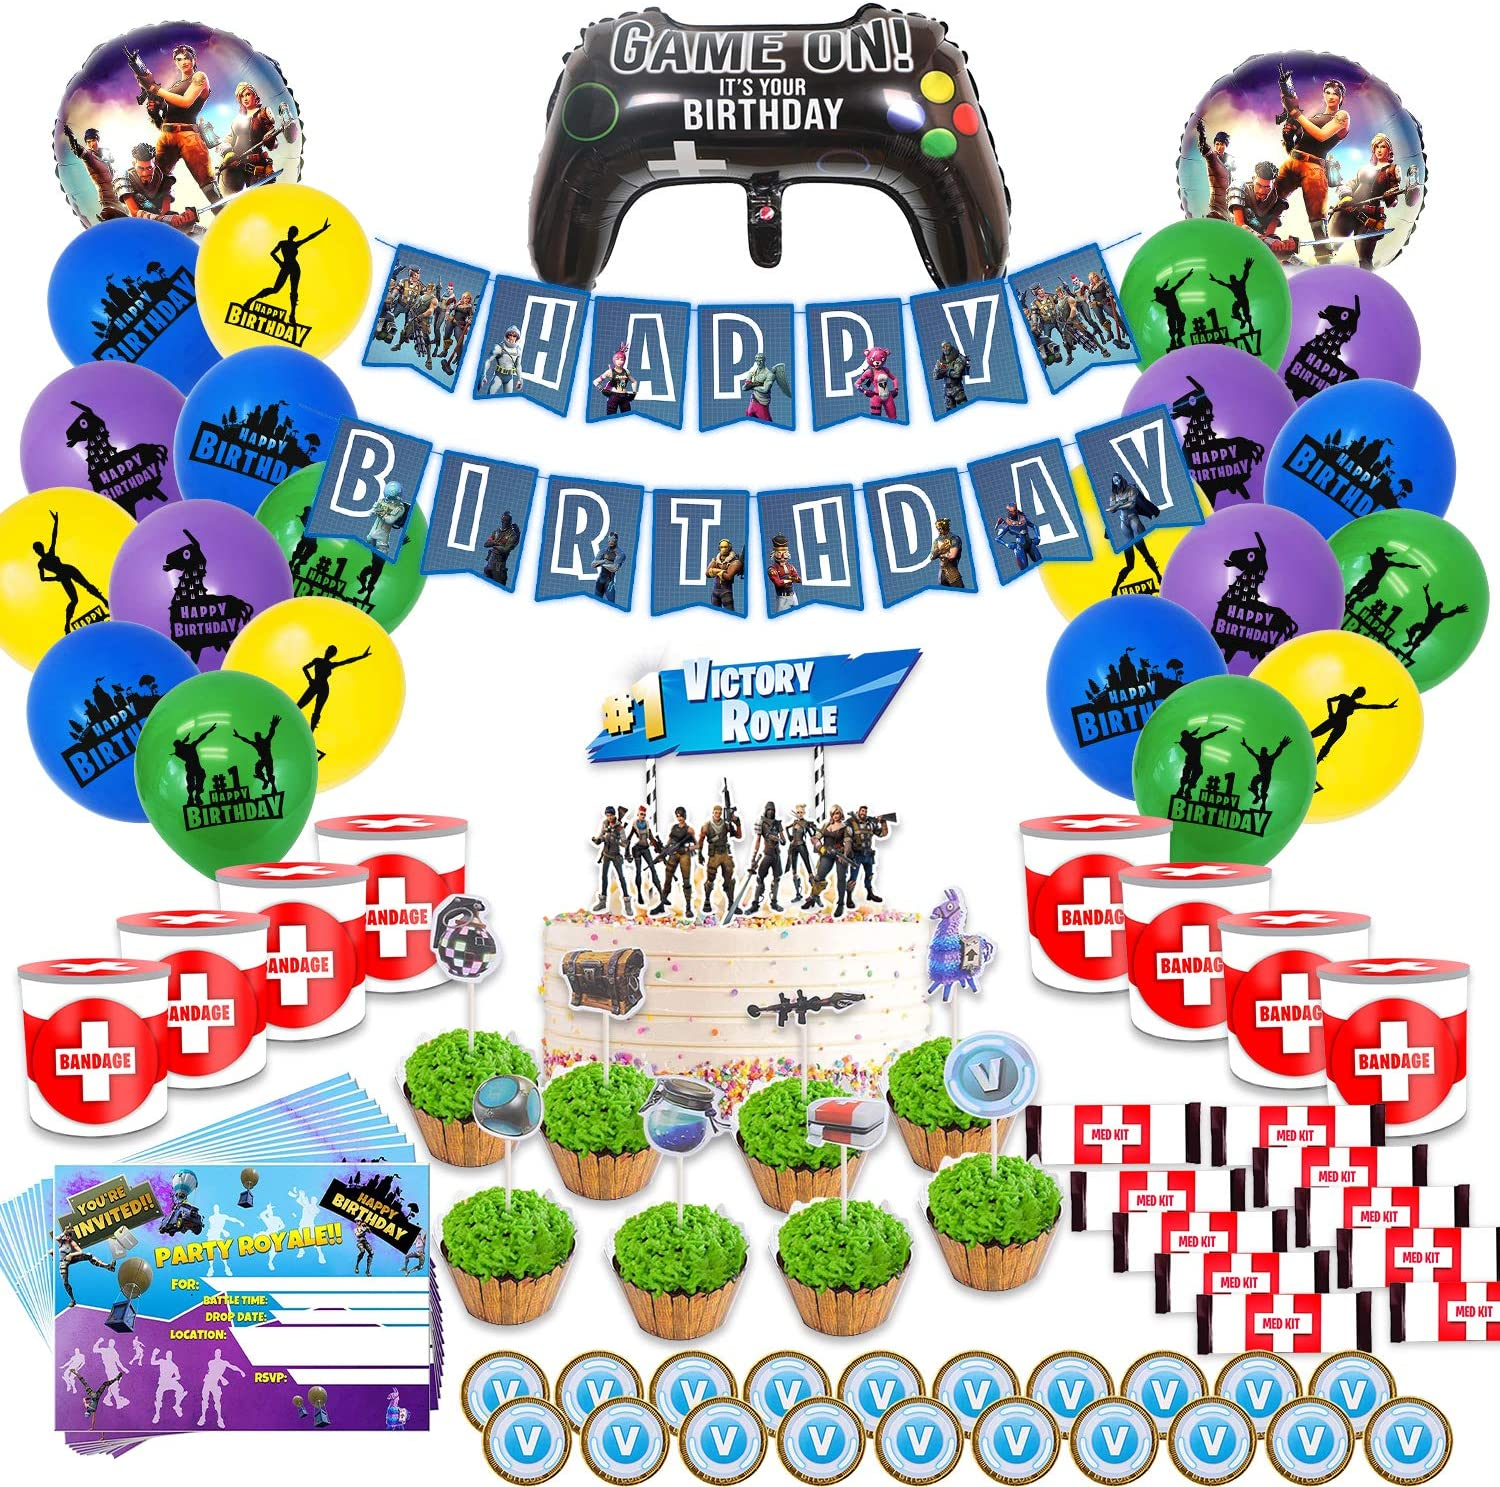 Video Game Party Supplies Includes Cake, Cupcake Toppers, Balloons, Banner, Invitation Cards, Chocolate Coins, Chocolate Bar Wrappers, Chip Can Labels Perfect Battle Royale Decorations Favors for Kids